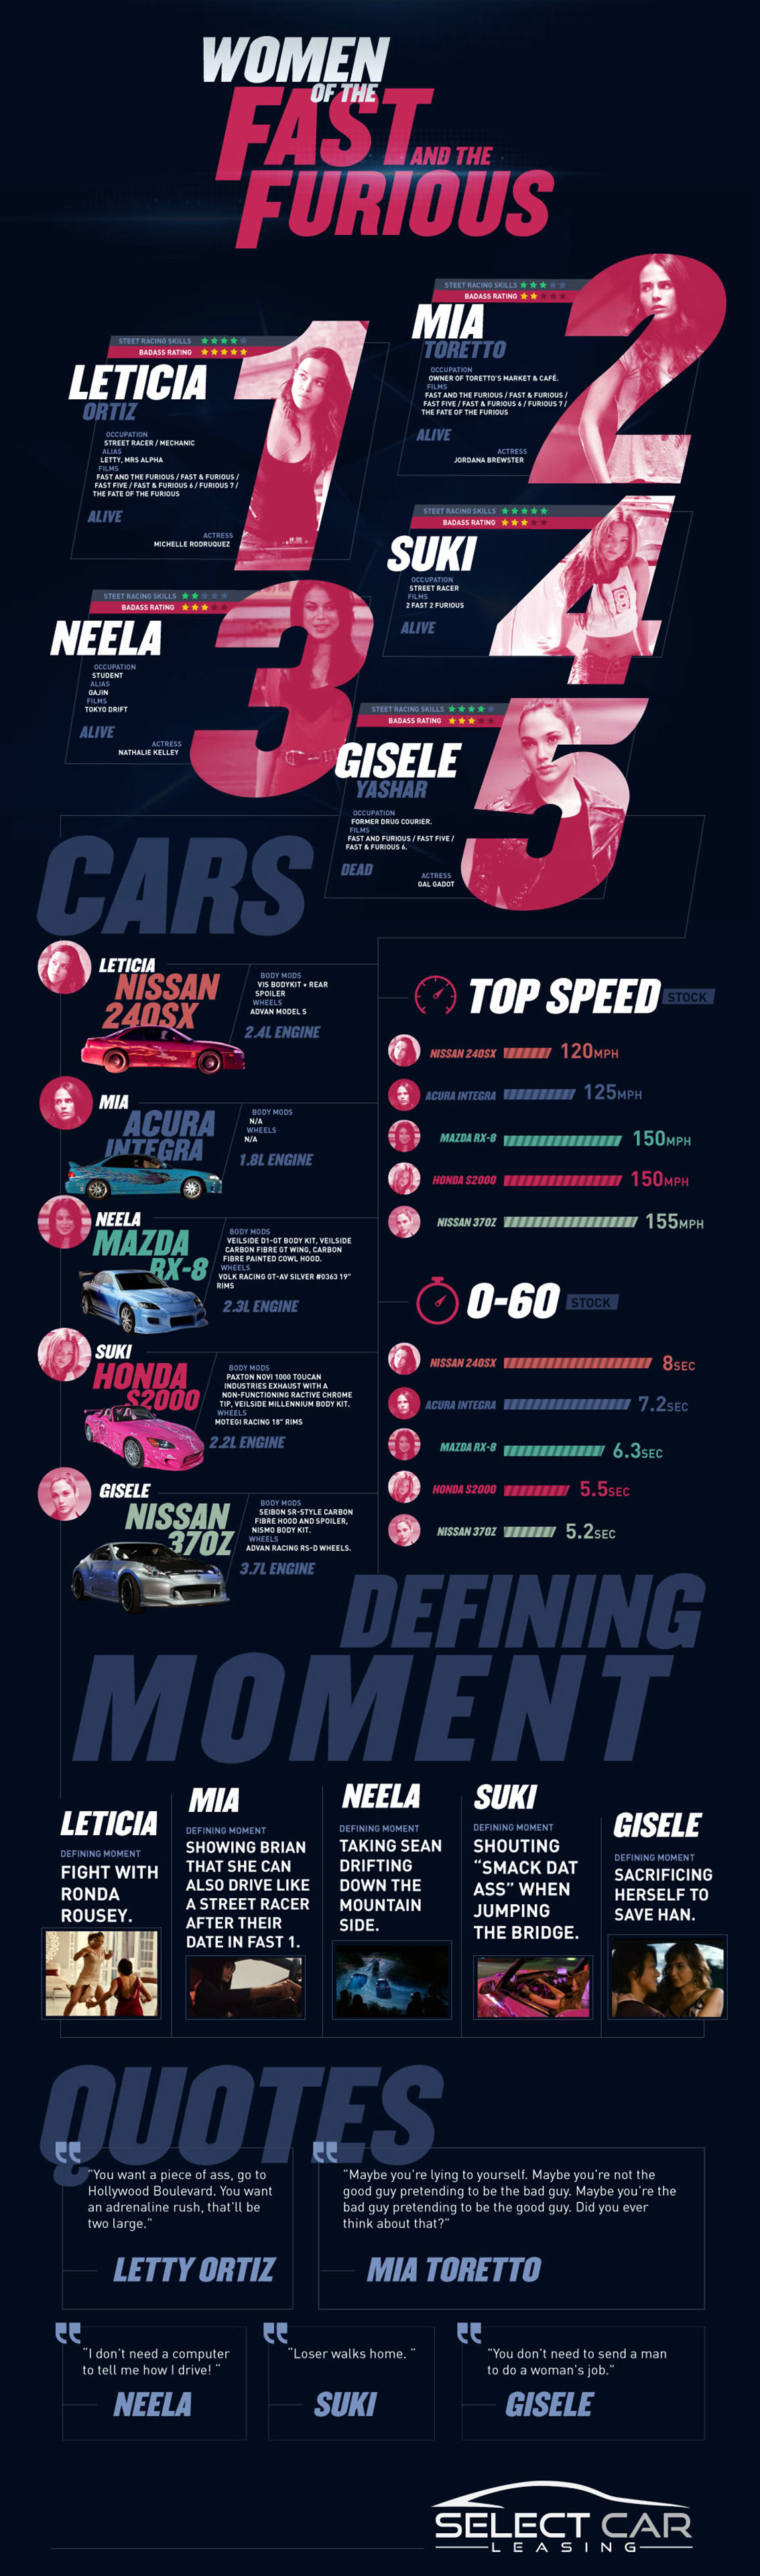 Female Casts of The Fast and the Furious - Movie Infographic